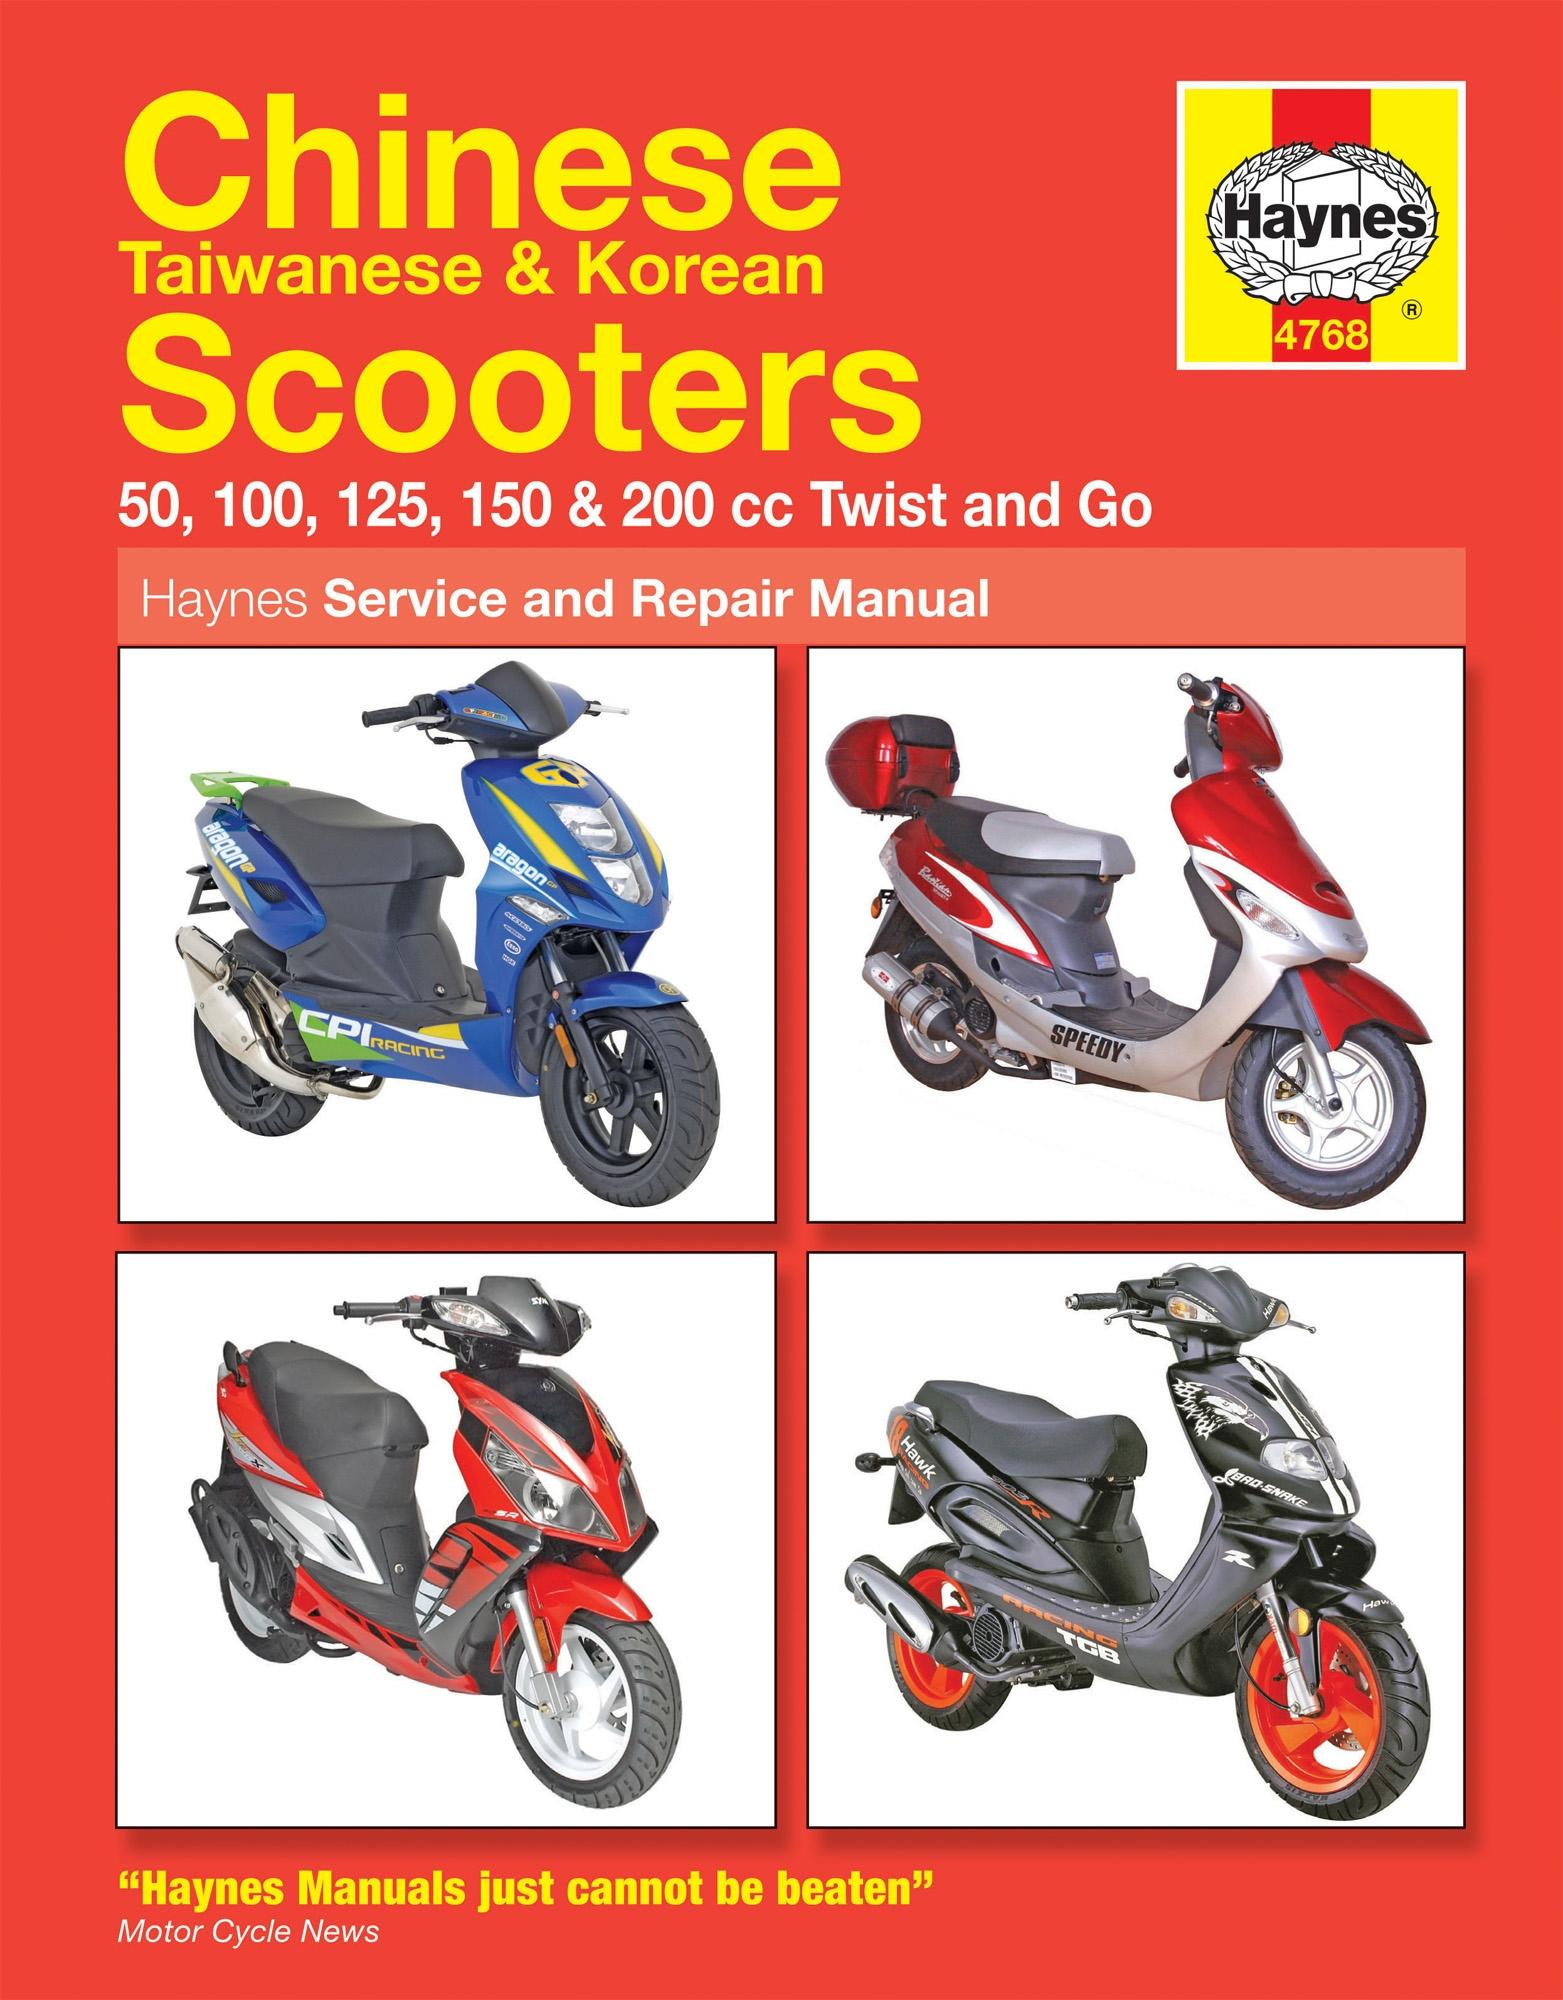 Details about Haynes Service Repair Manual Chinese Taiwanese Korean Scooters  2 4 Stroke Engine